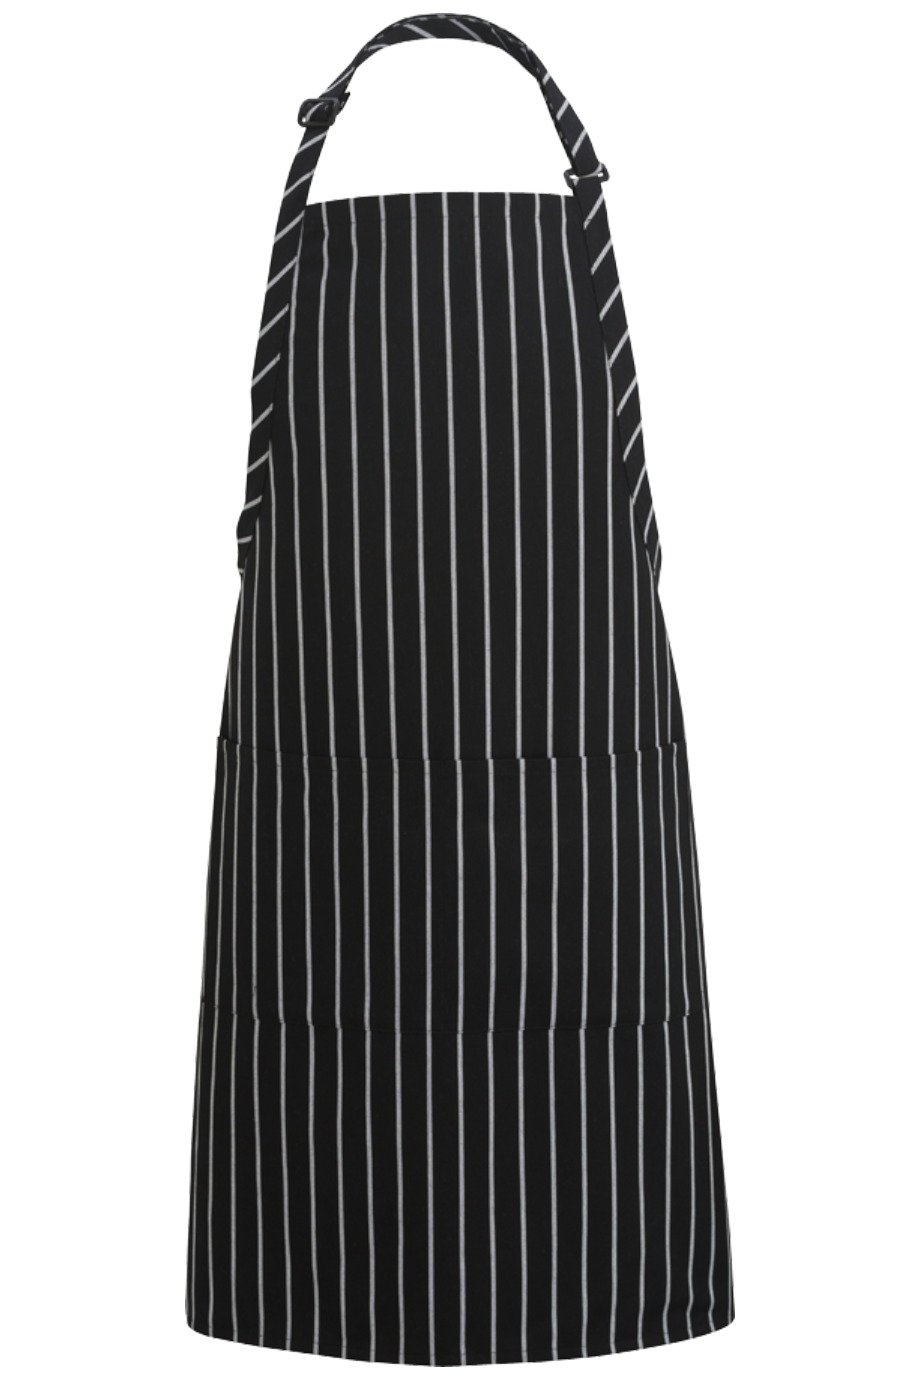 Chalkstripe Butcher Adjustable Apron (2 Pockets)